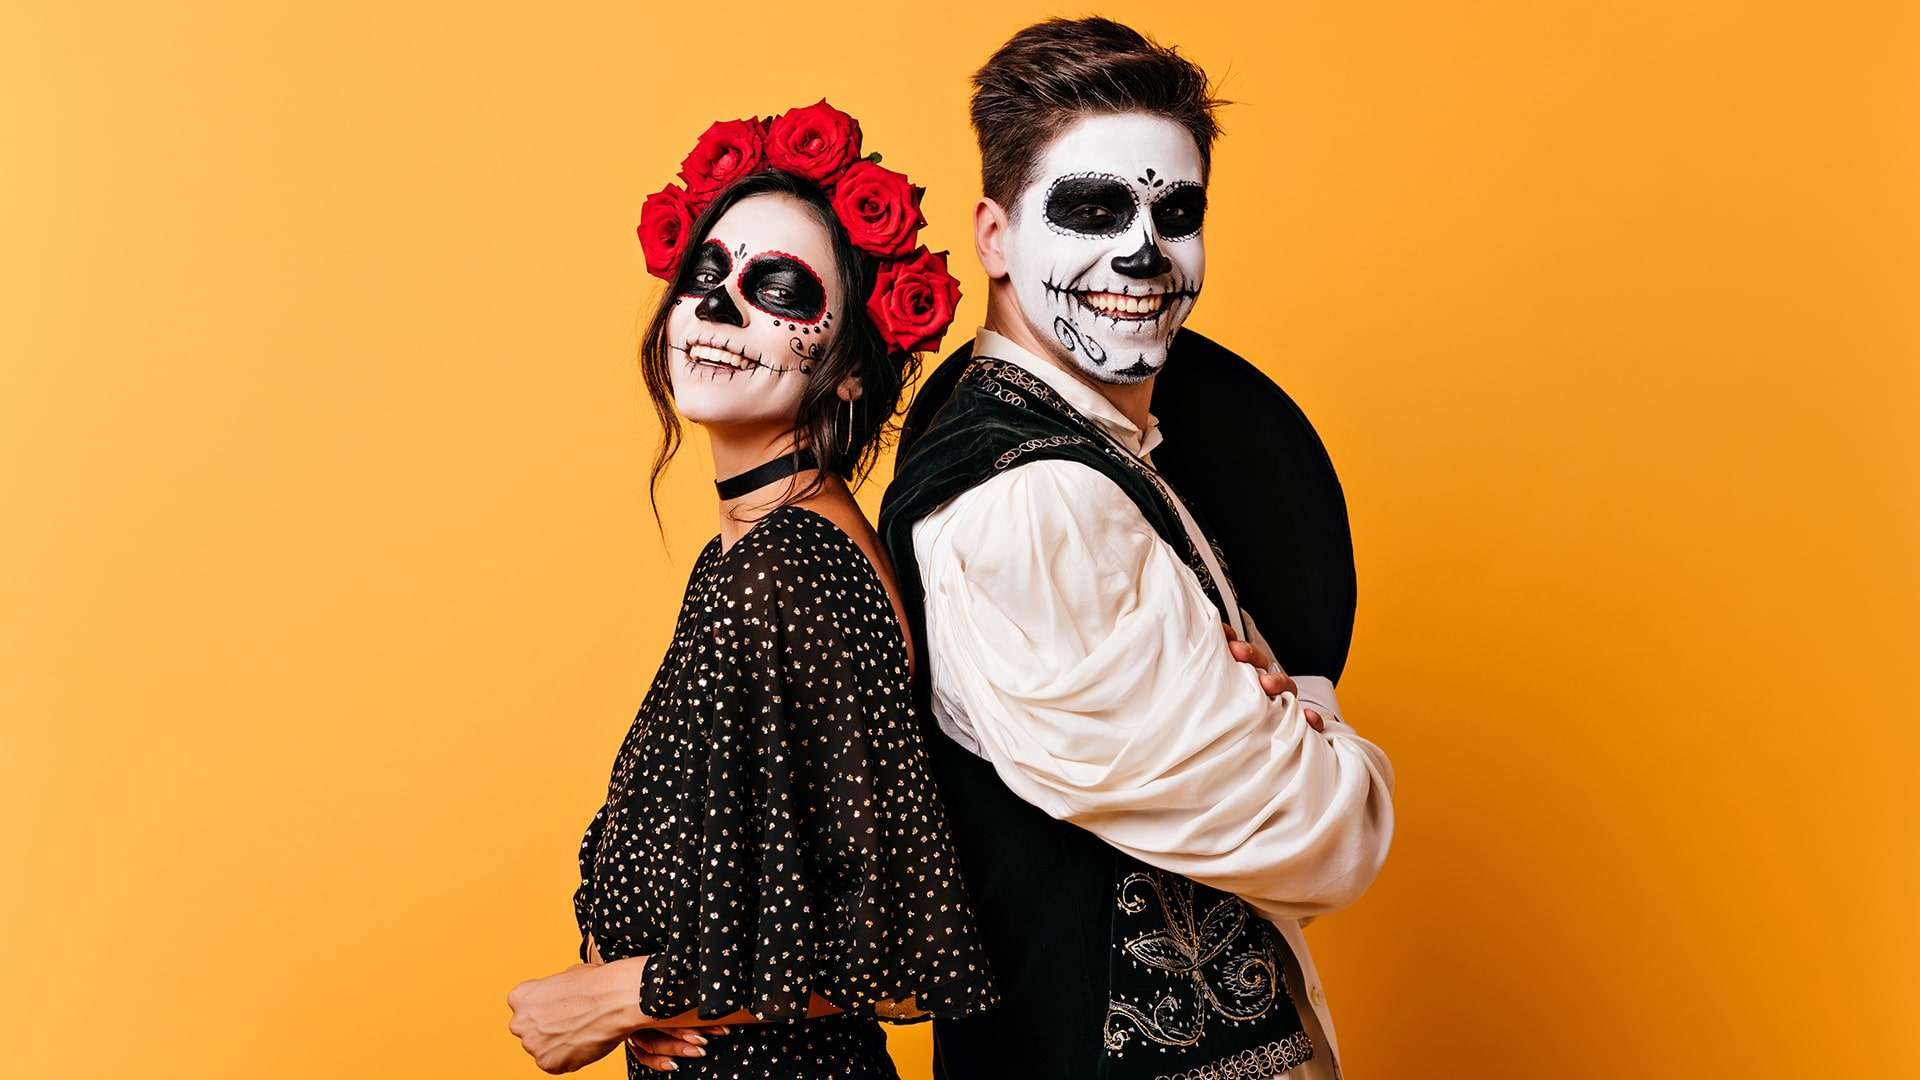 Puerto Vallarta Day Of The Dead Celebration